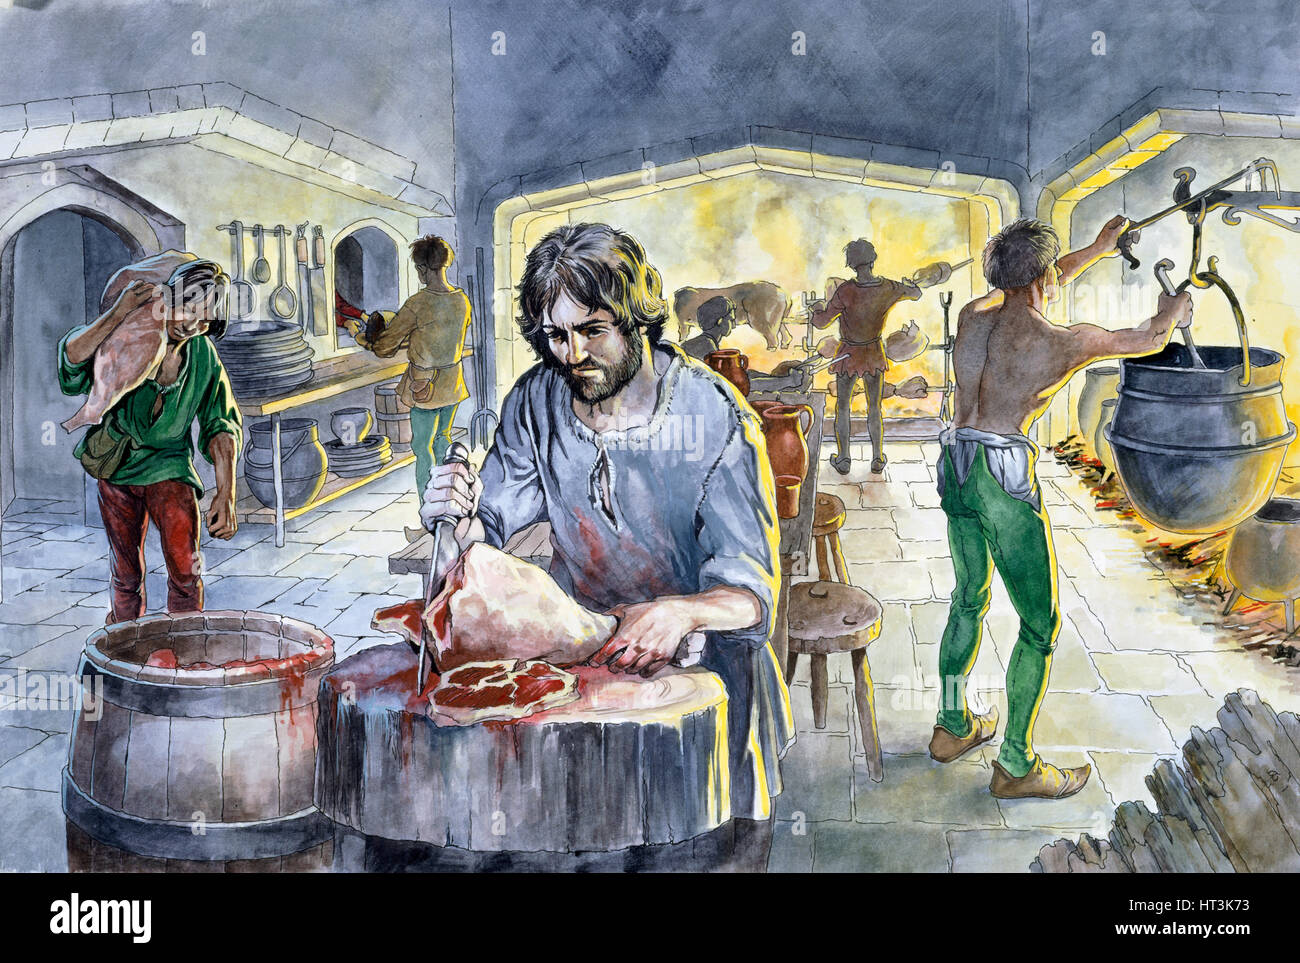 Kitchen in the Middle Ages, c14th century, (c1990-2010) Artist: Philip Corke. - Stock Image